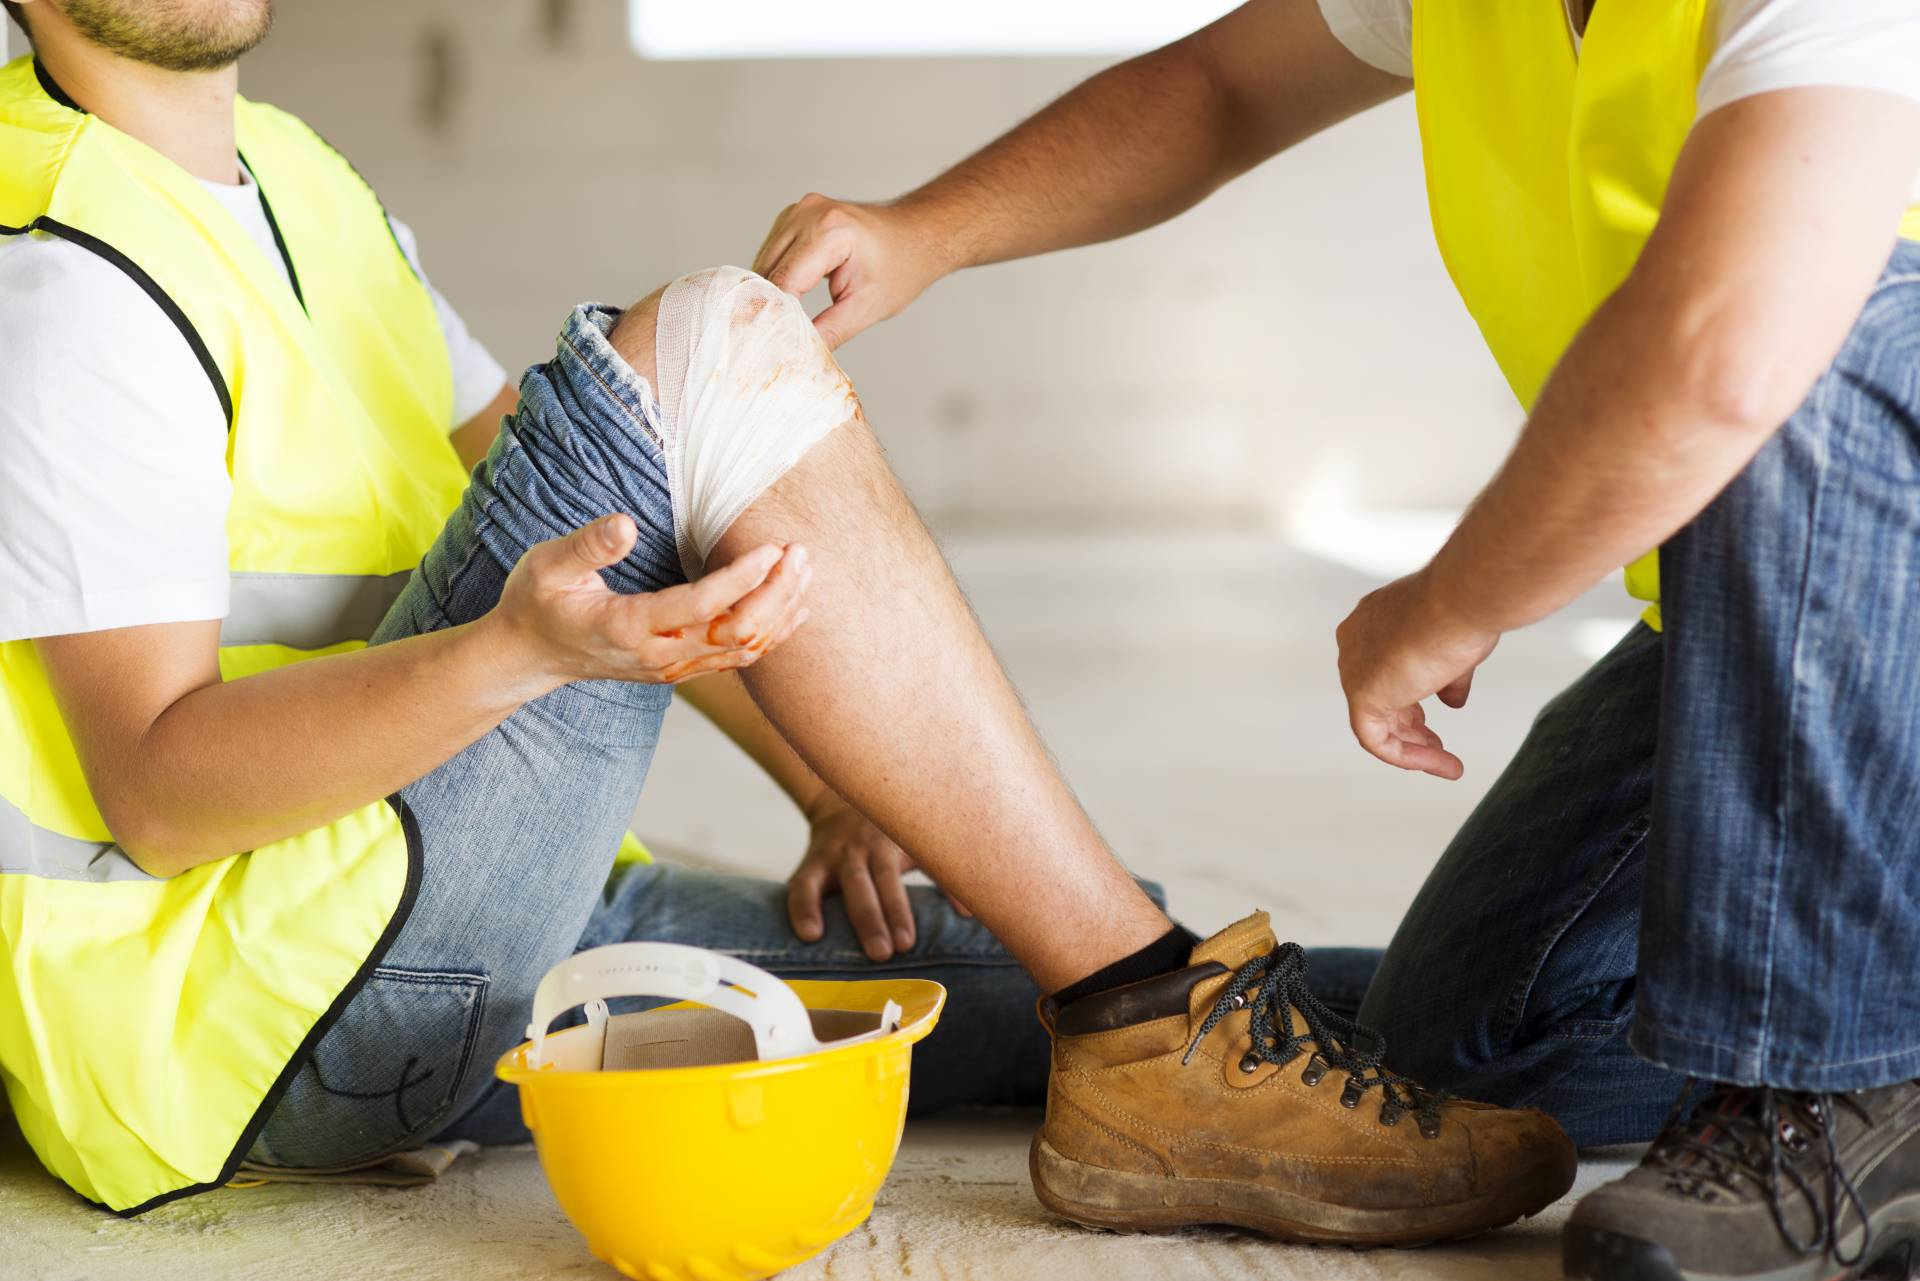 Injured on the job in McDonough, Ga? Schedule a free consultation with our personal injury lawyers.